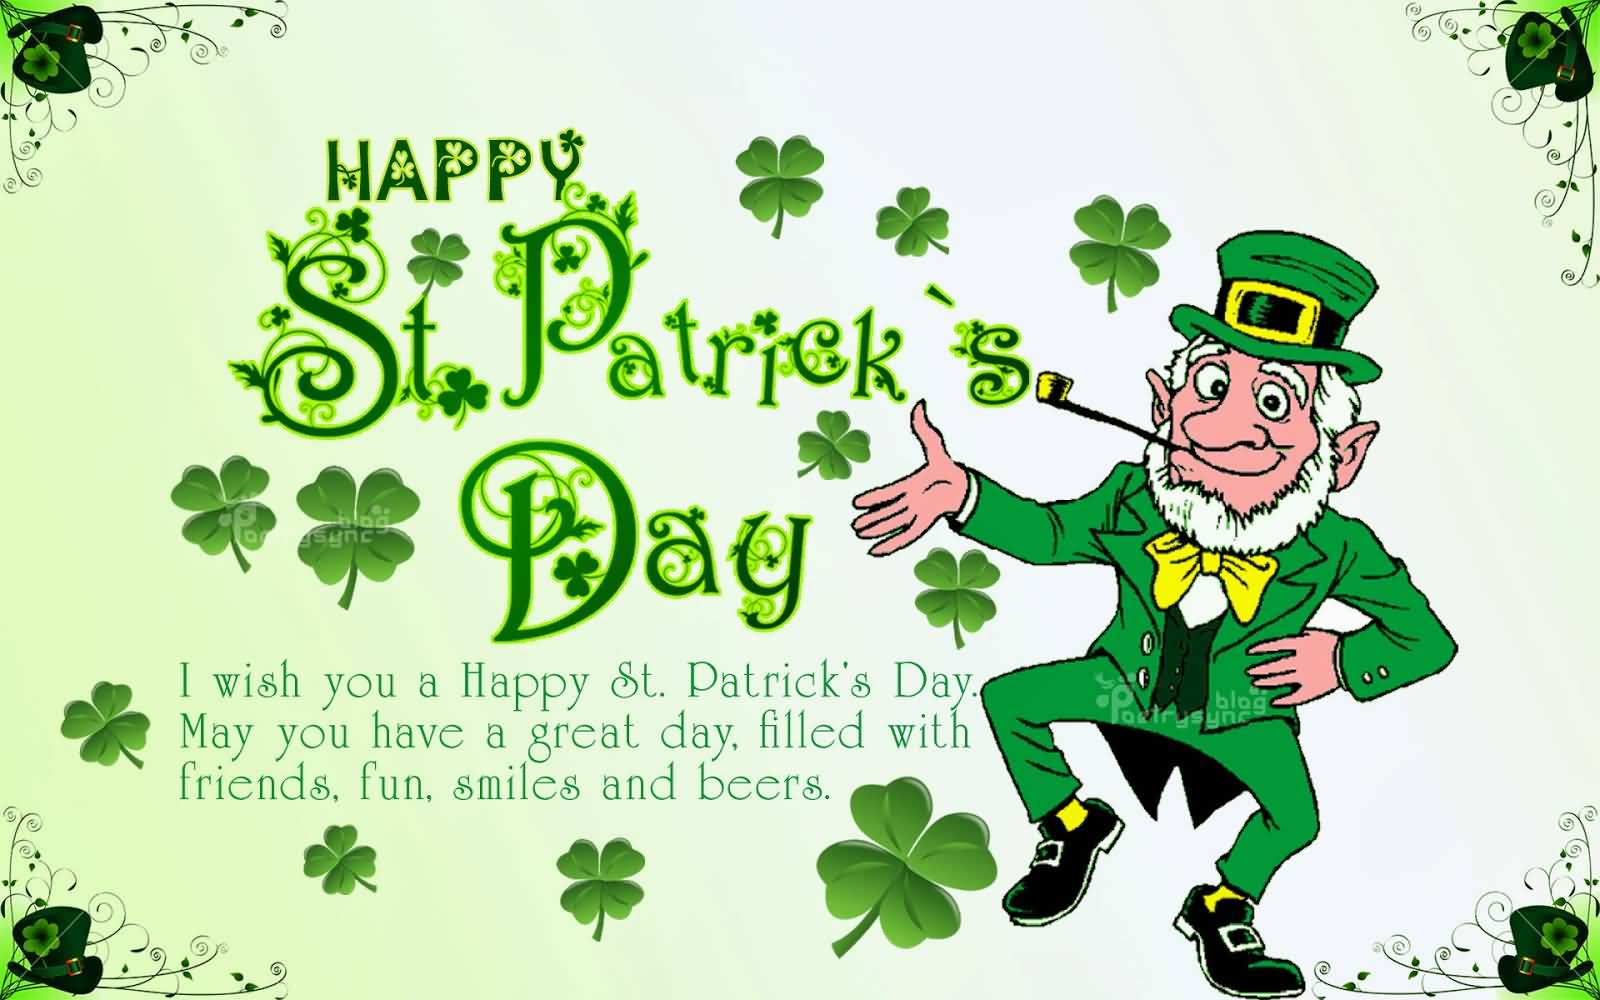 55 most beautiful saint patricks day wish pictures and photos i wish you a happy saint patricks day may you have a great day filled with m4hsunfo